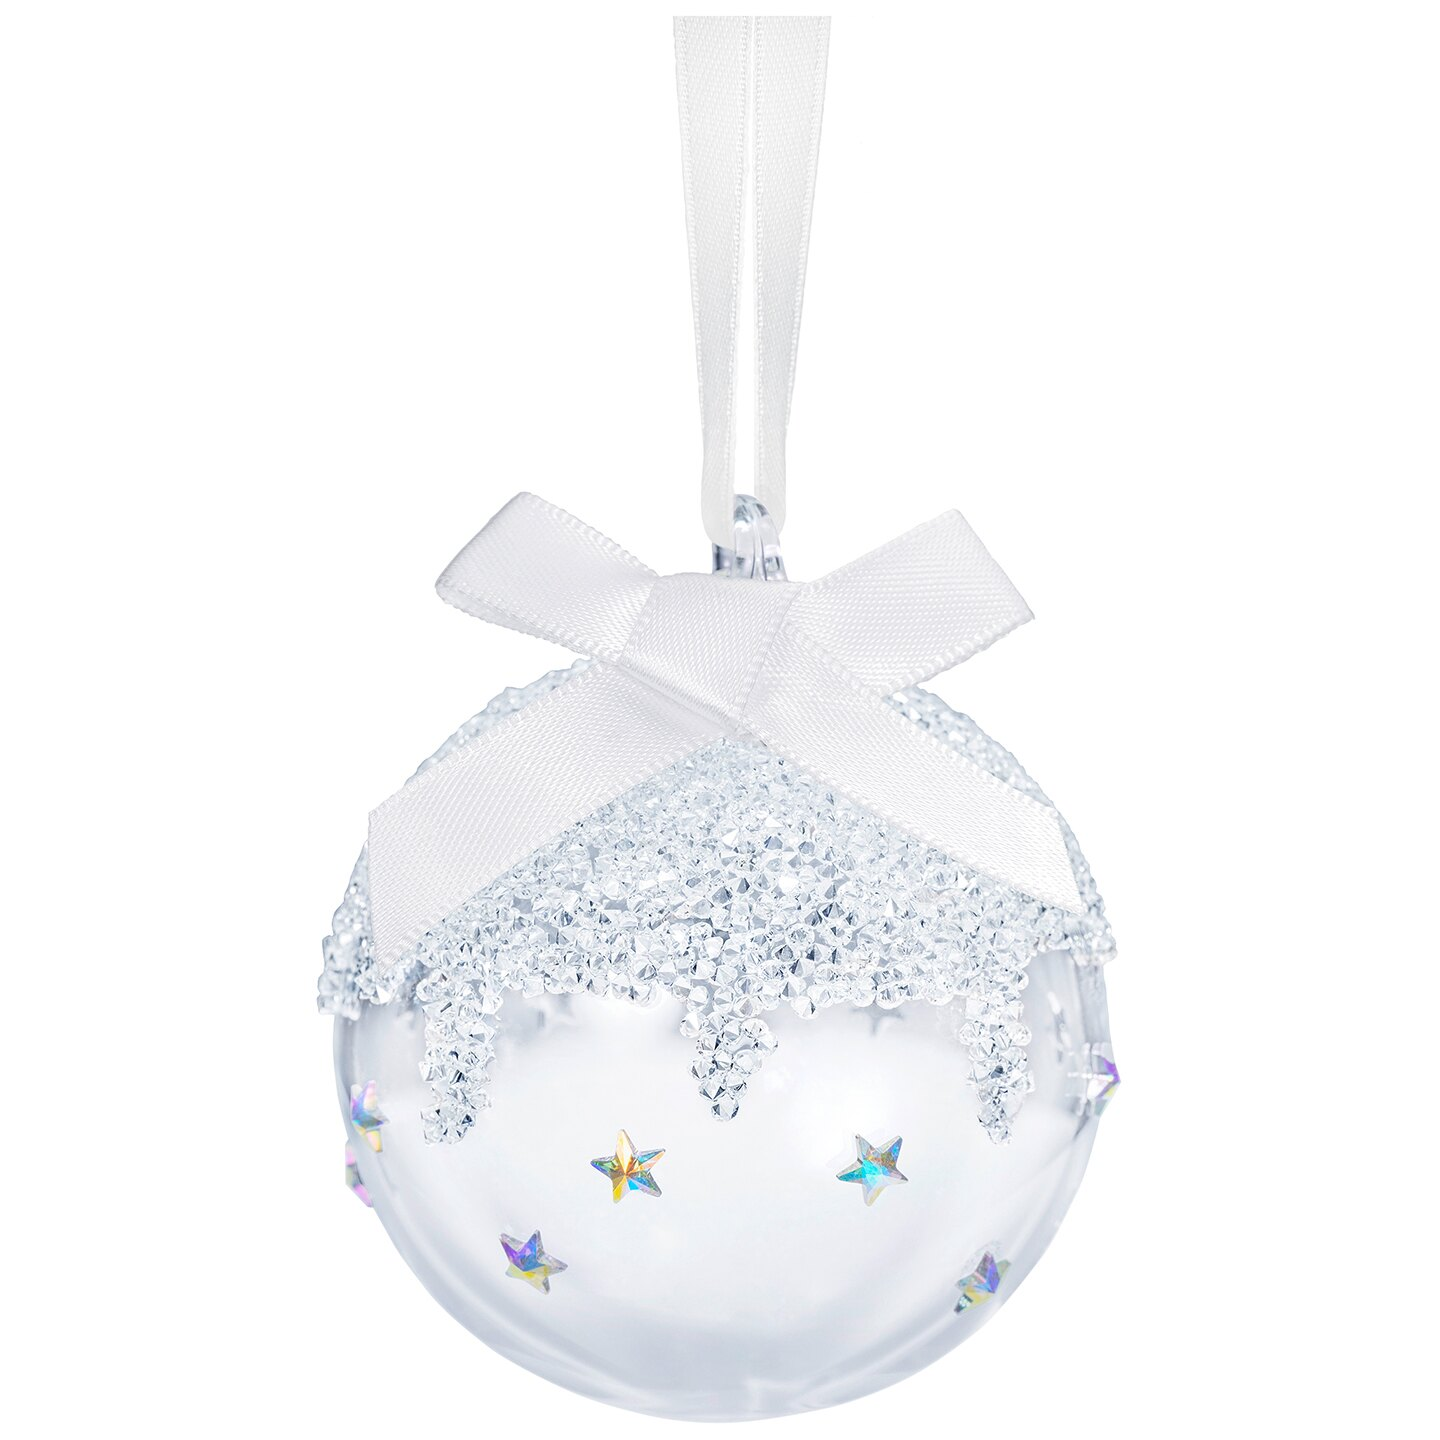 Swarovski Christmas Ball Ornament - Small